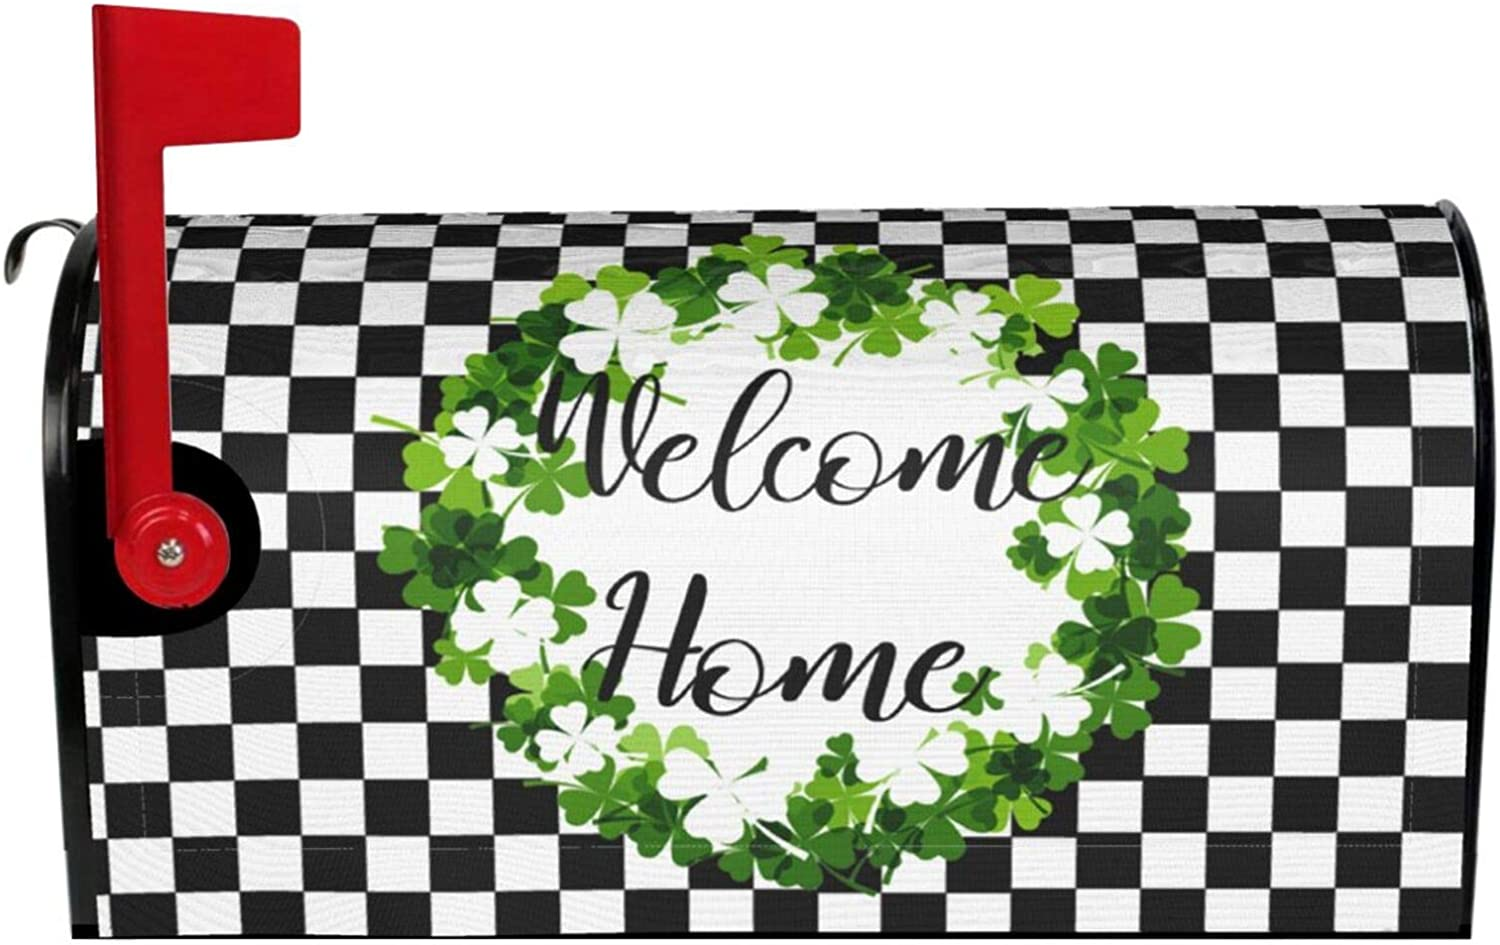 Cheap SALE Start DZGlobal Magnetic Mailbox Covers Boxwood Wreath Welcome Selling and selling Ho Plaid